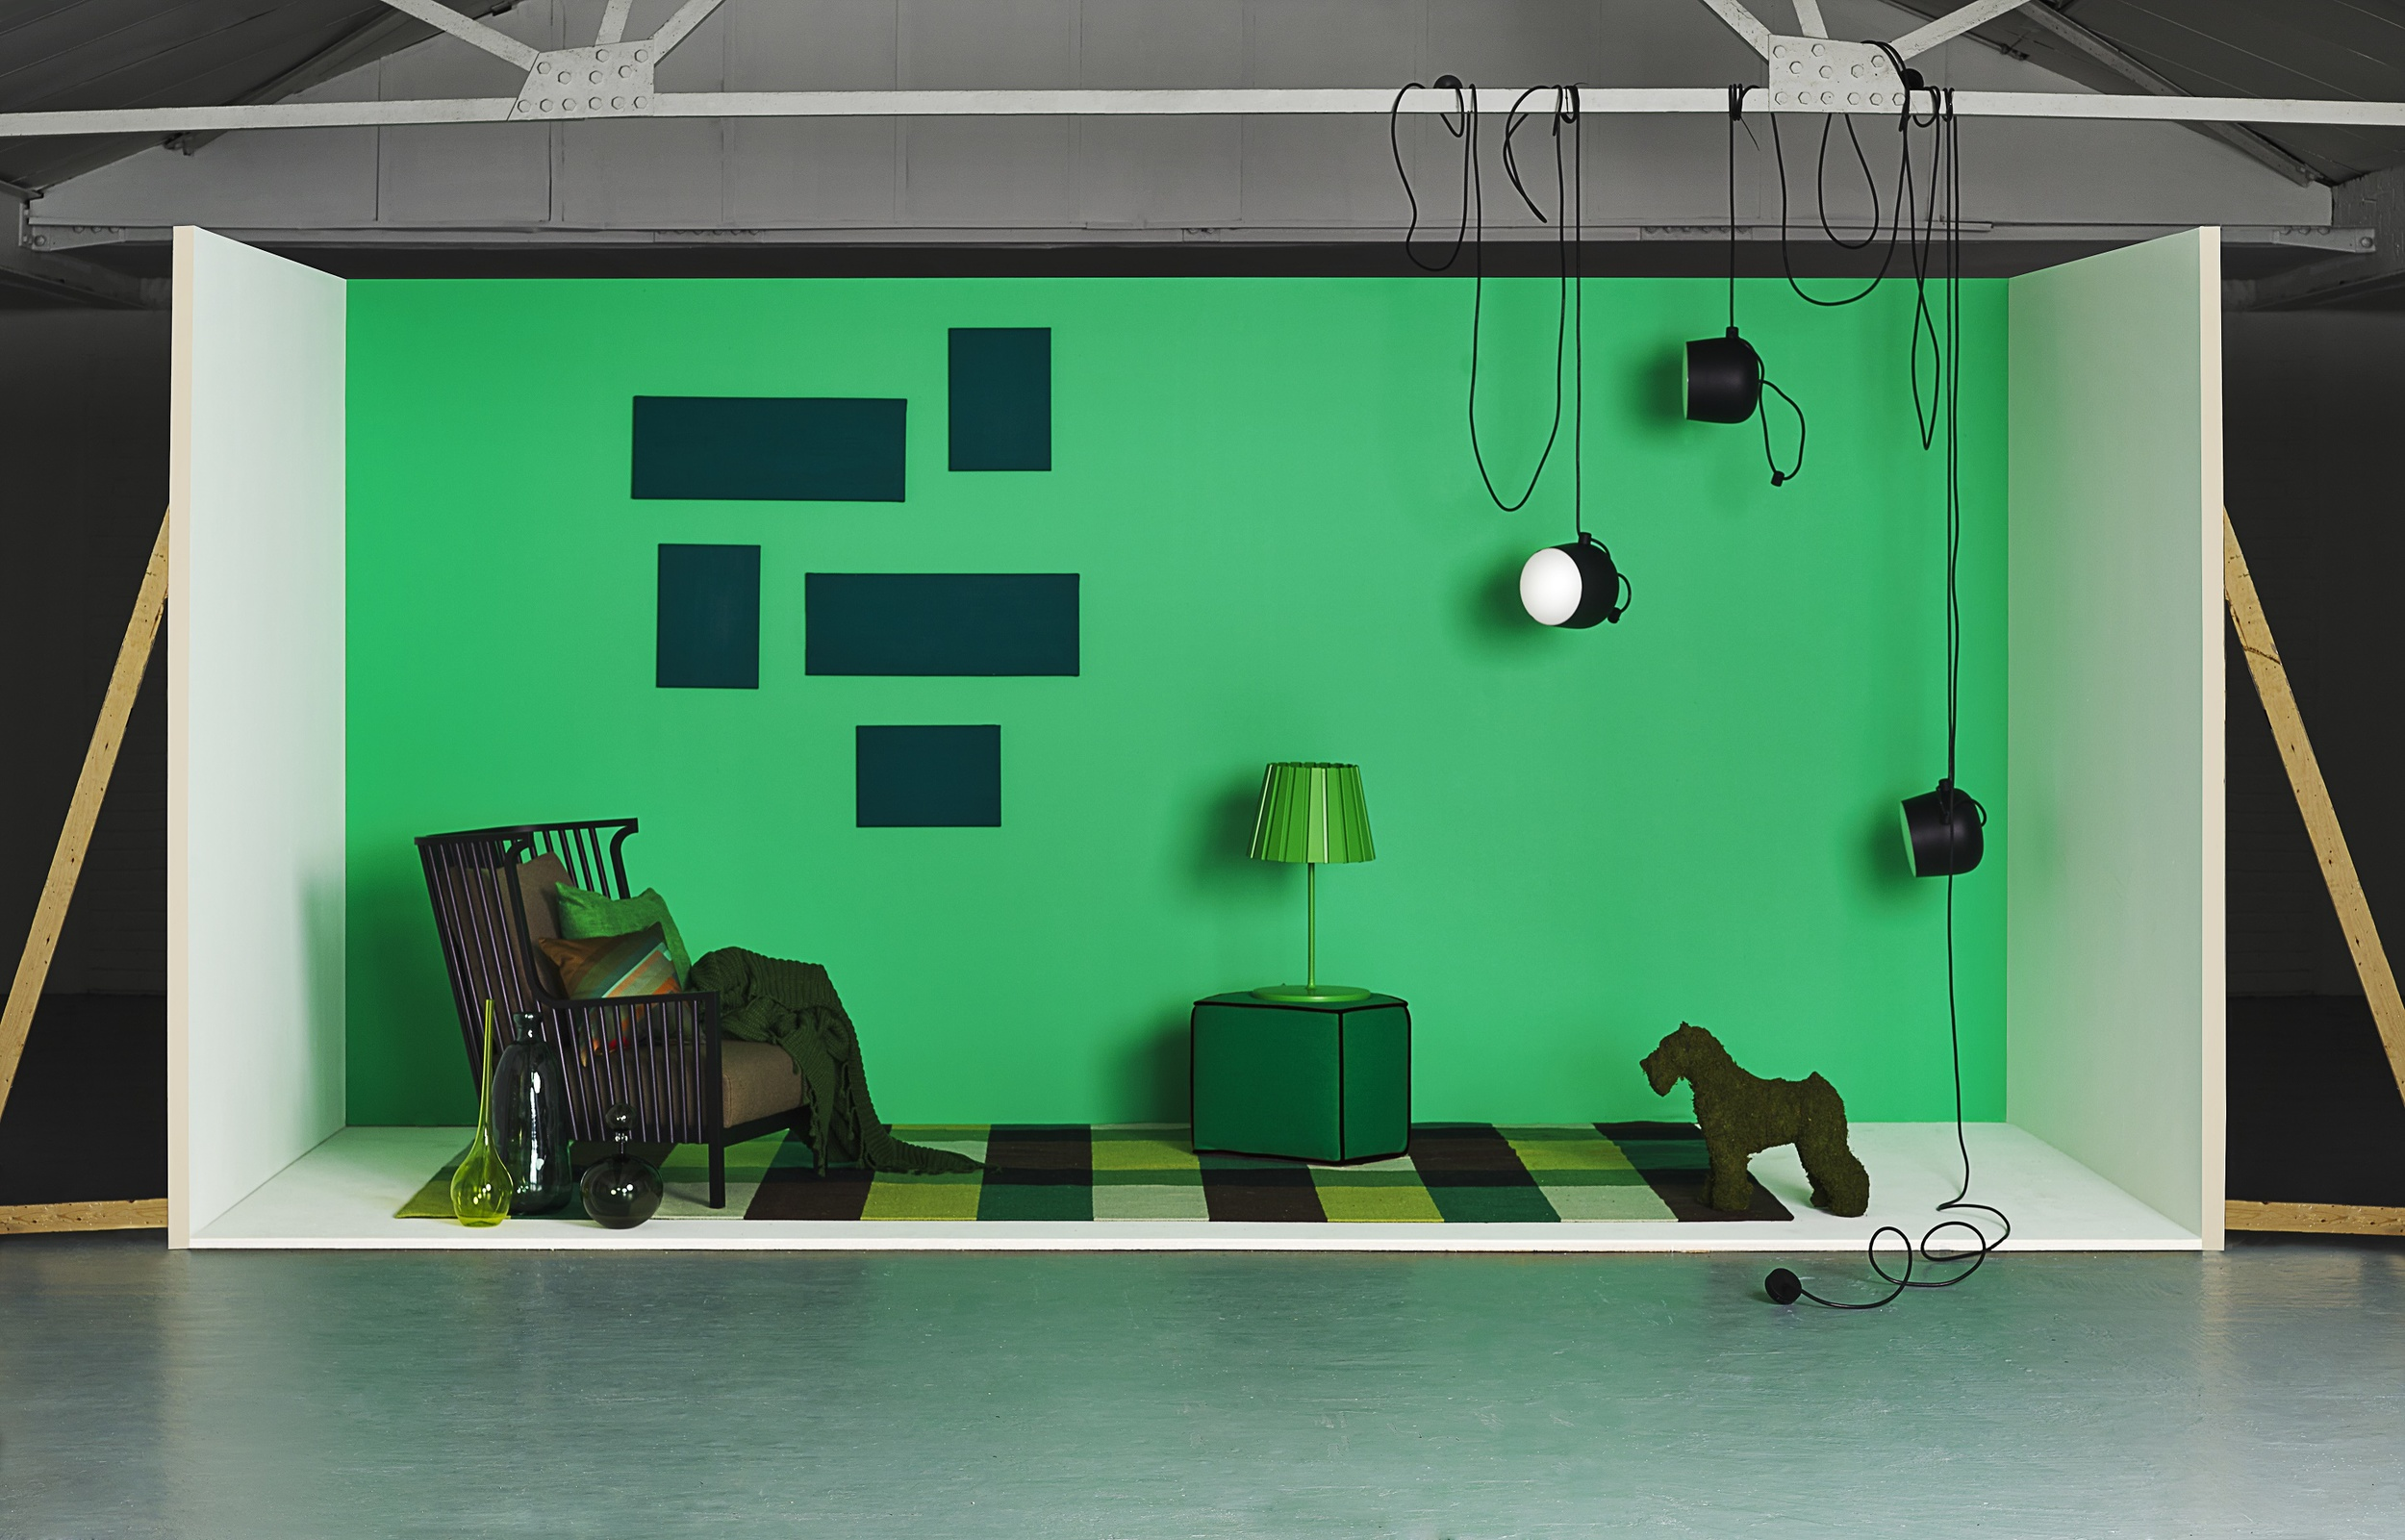 Colour Block: Green